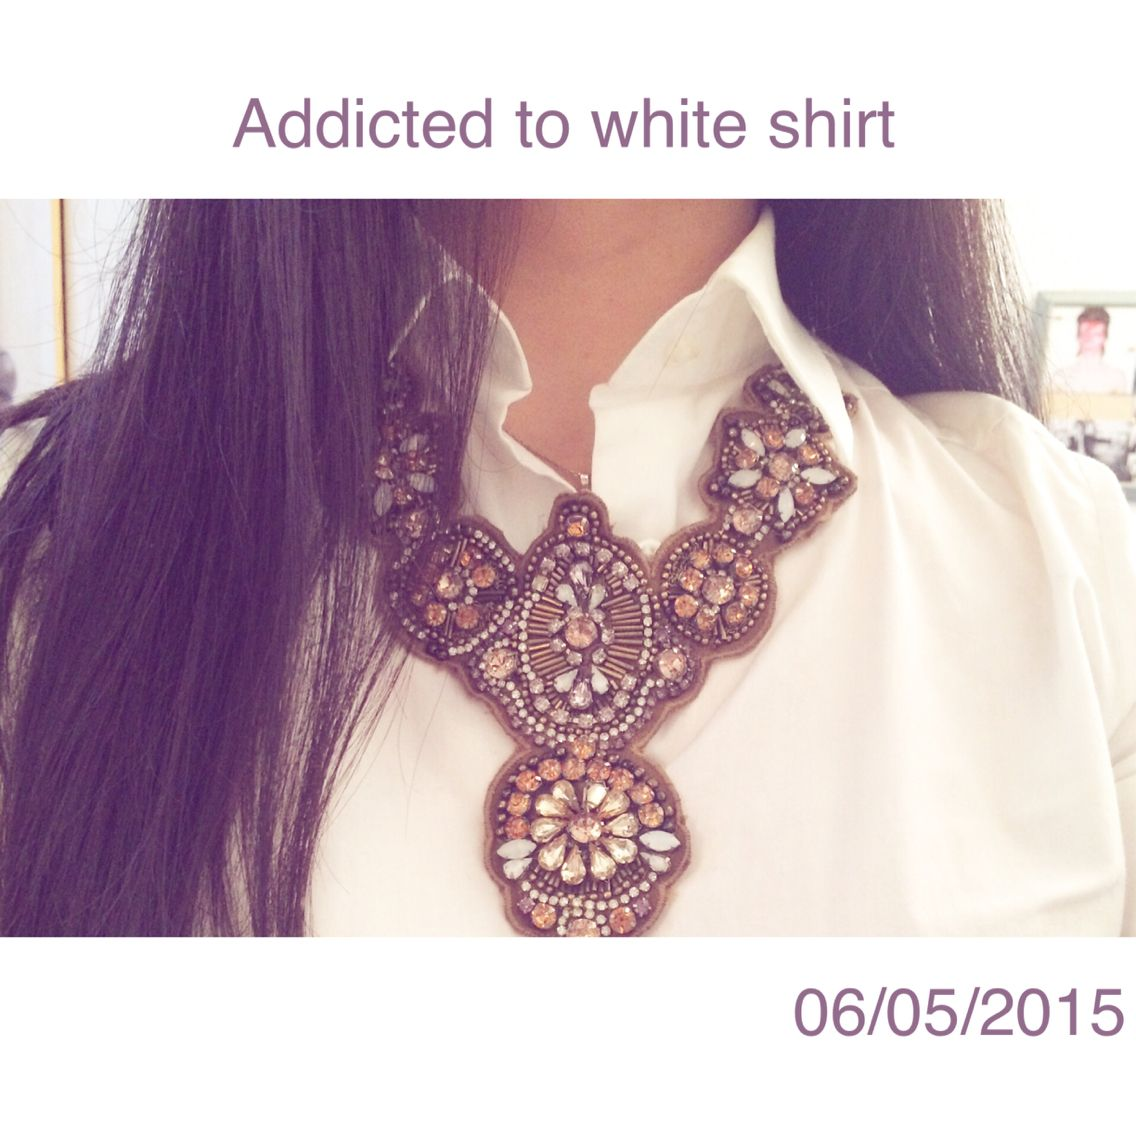 Addicted to white shirt and fancy bijou